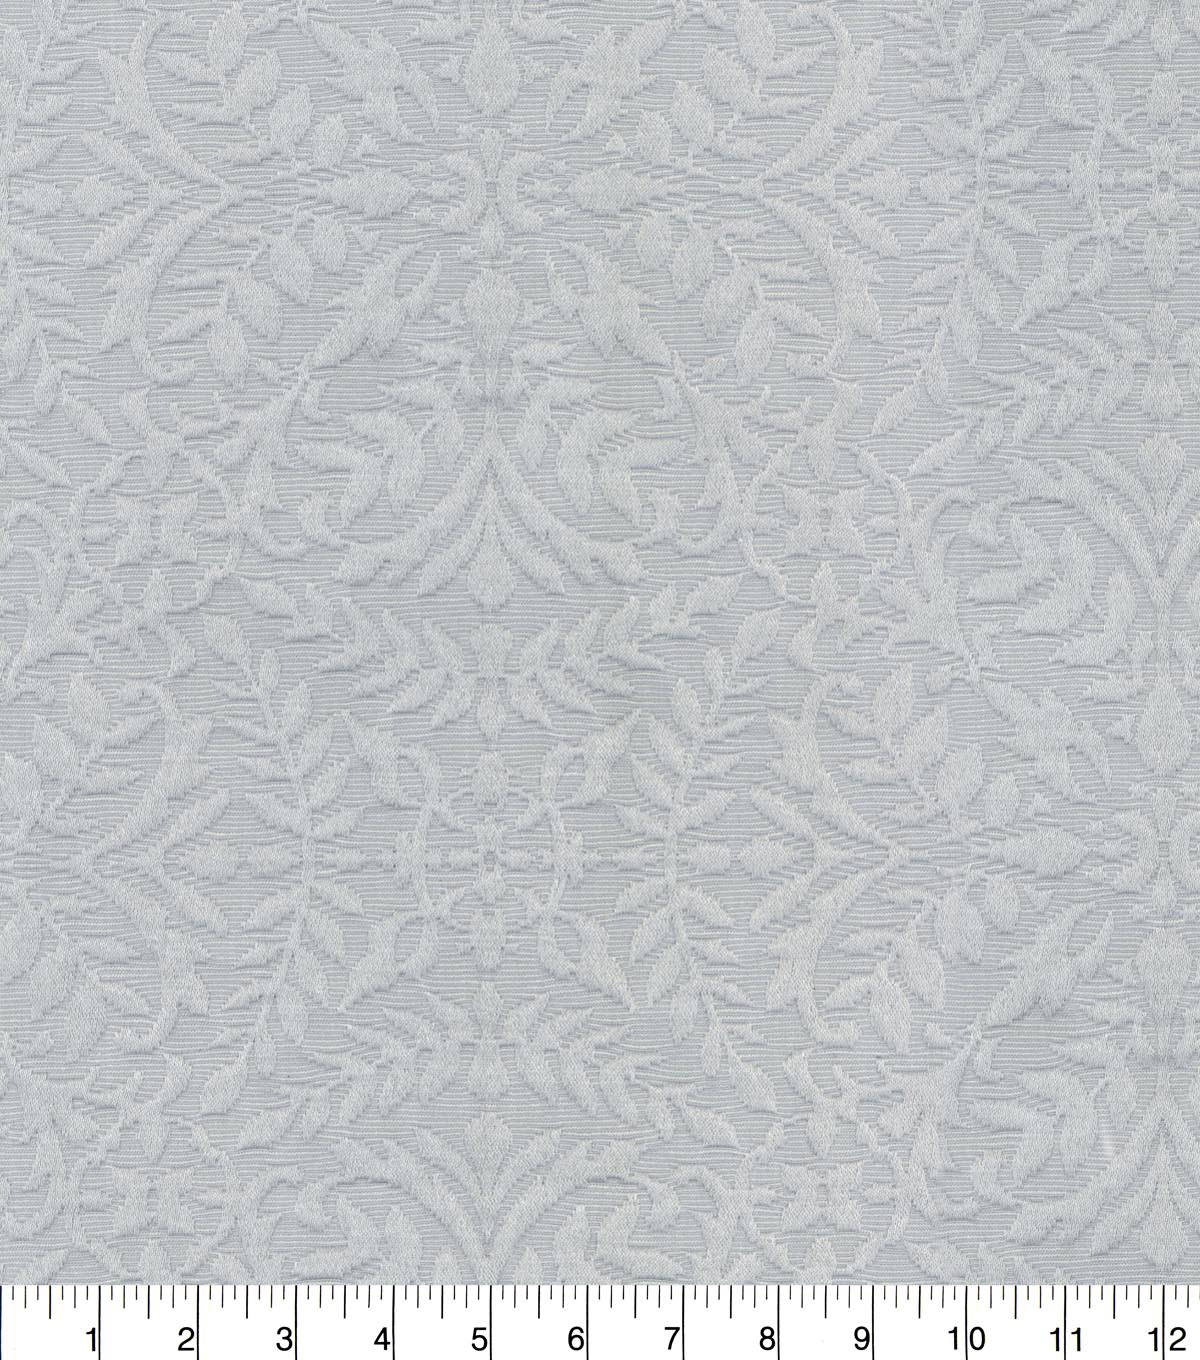 Home Decor 8\u0022x8\u0022 Fabric Swatch-Montagu Matelasse Stone